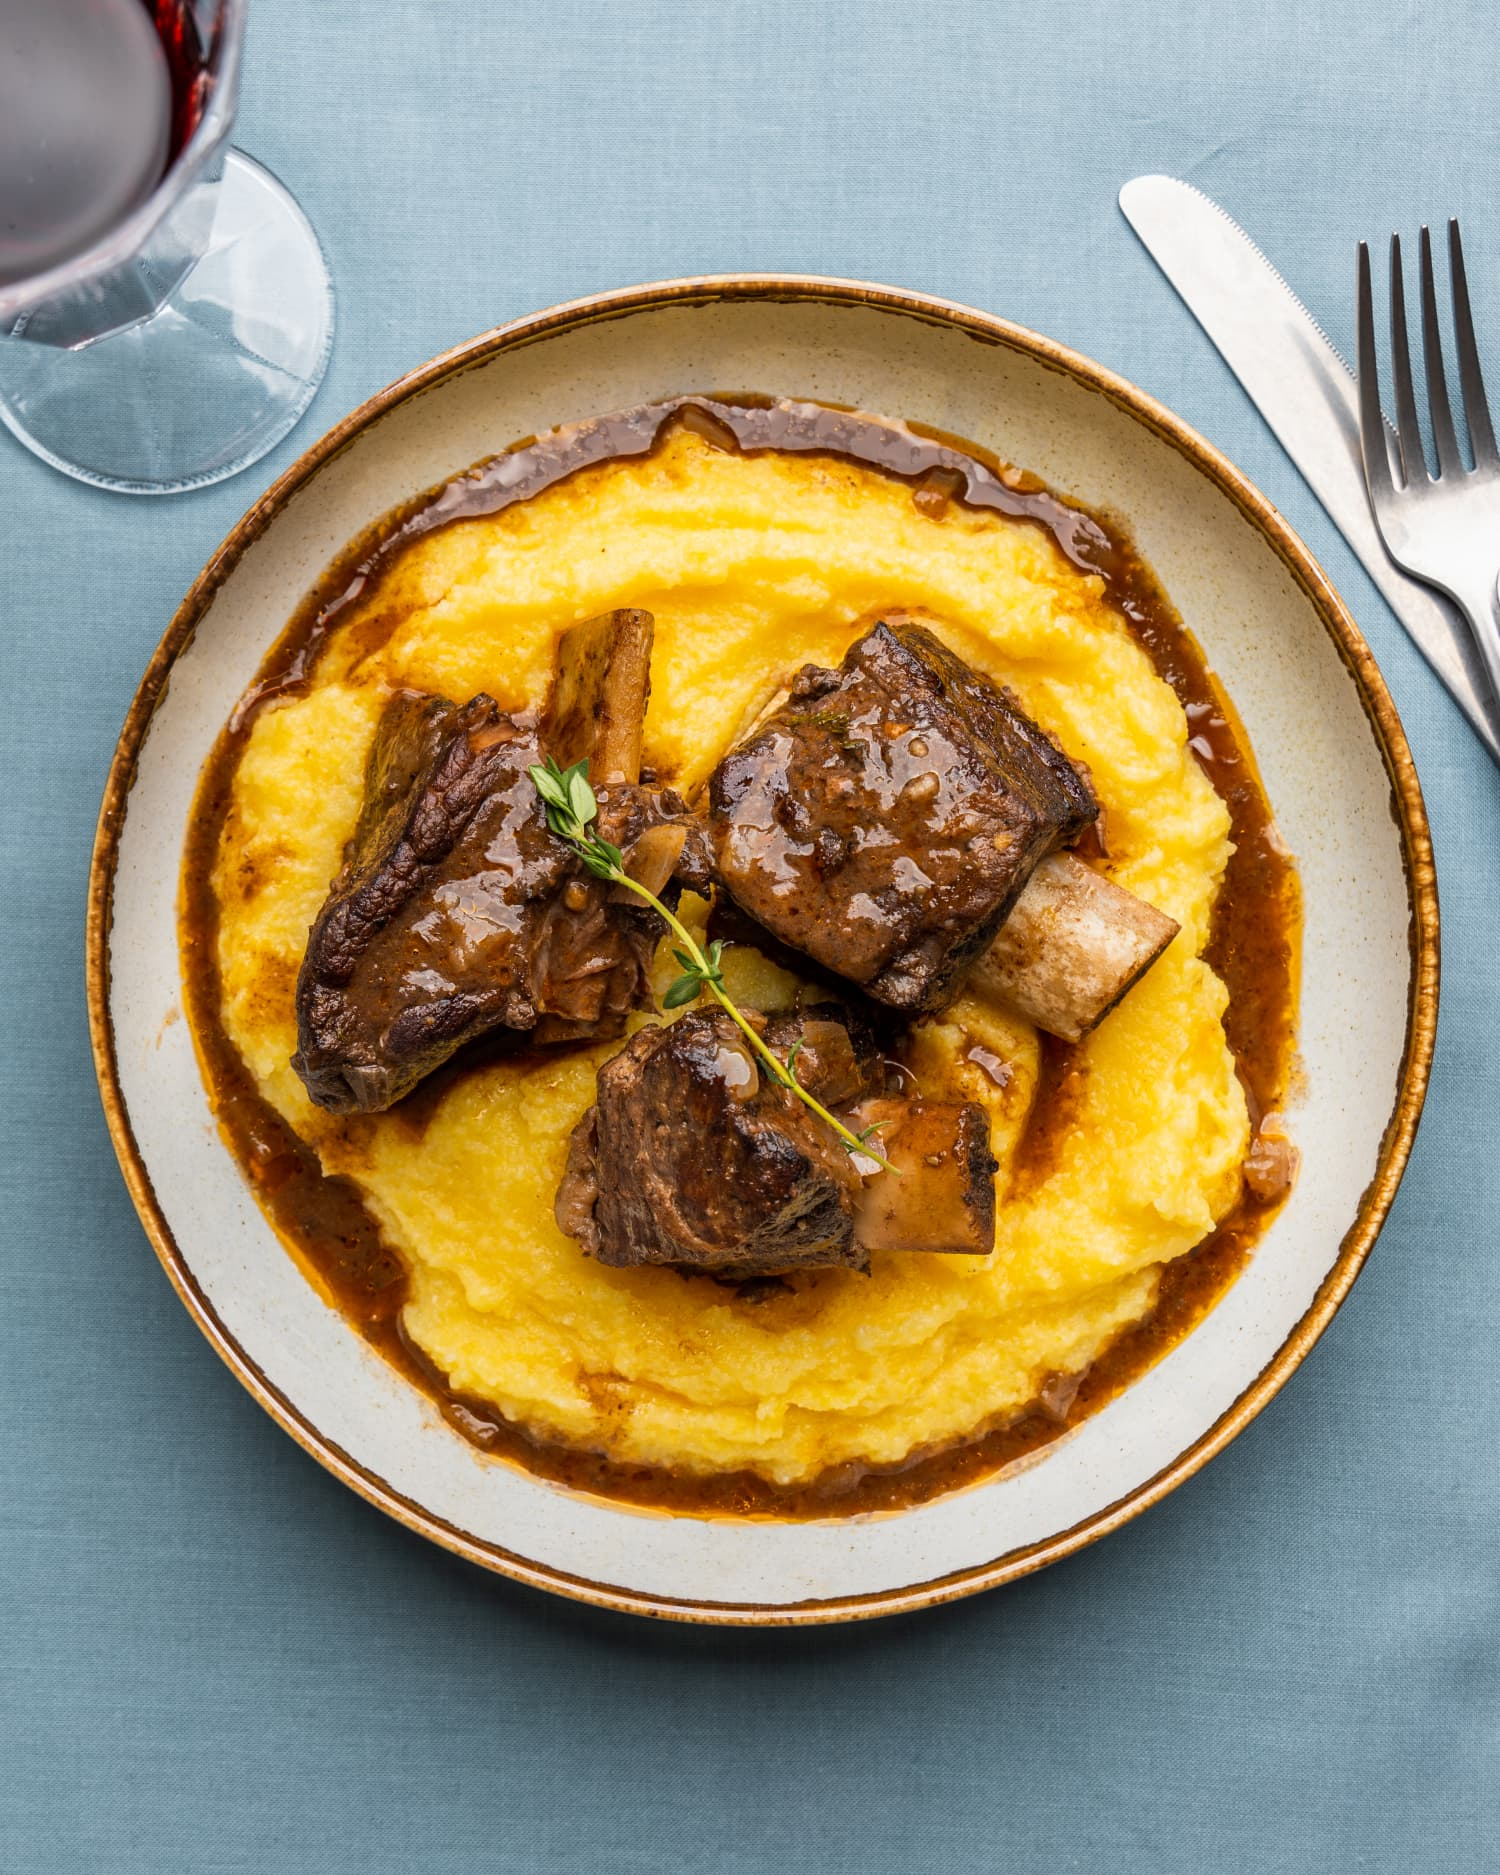 Red Wine-Braised Short Ribs Will Remind You Why Your Slow Cooker Is Awesome